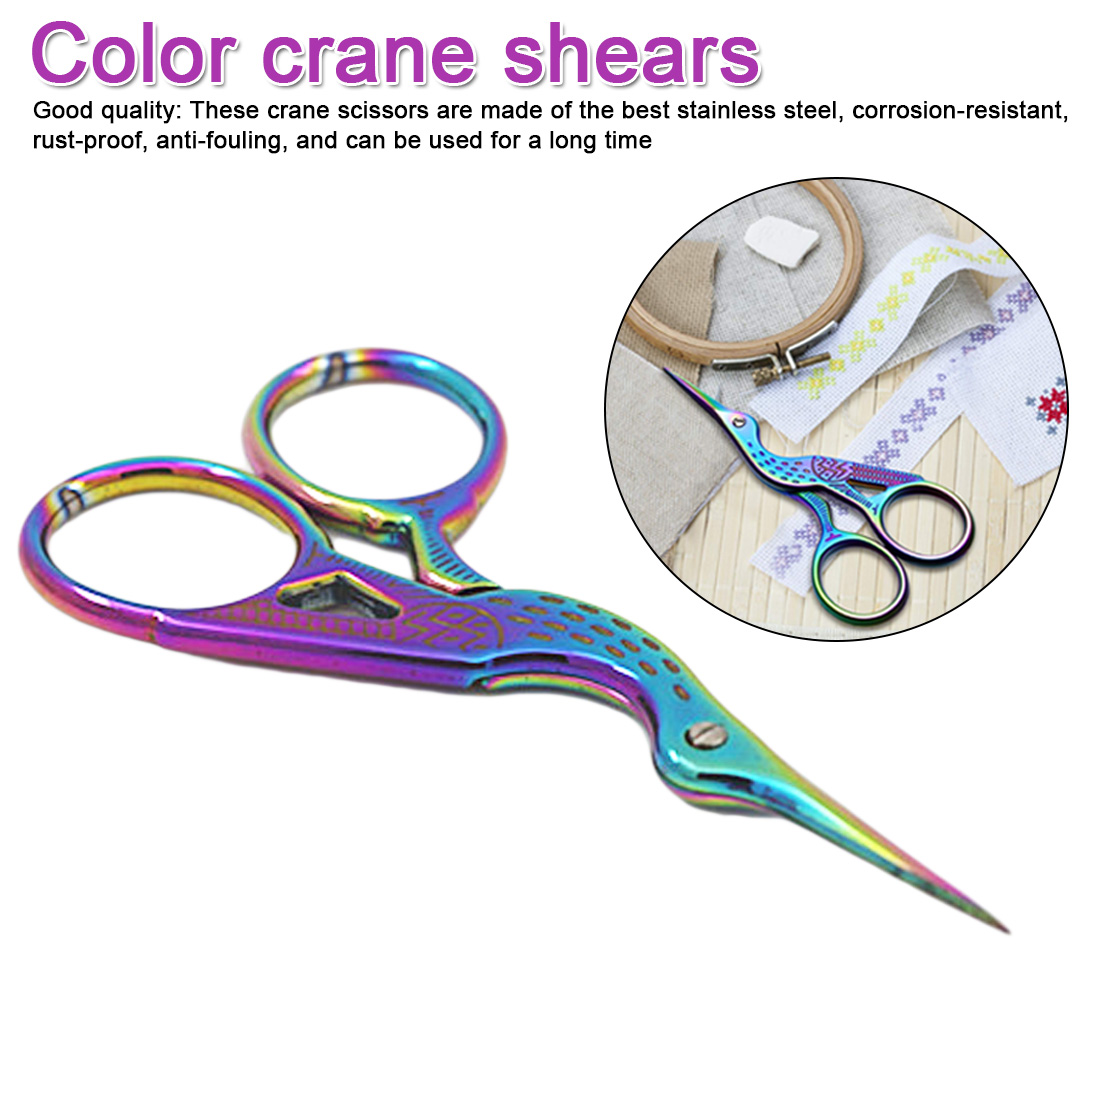 115mm Stainless Steel Classic Crane Bird Scissors Durable Manicure Cutter Remover Scissor Nail Cuticle Styling Tool